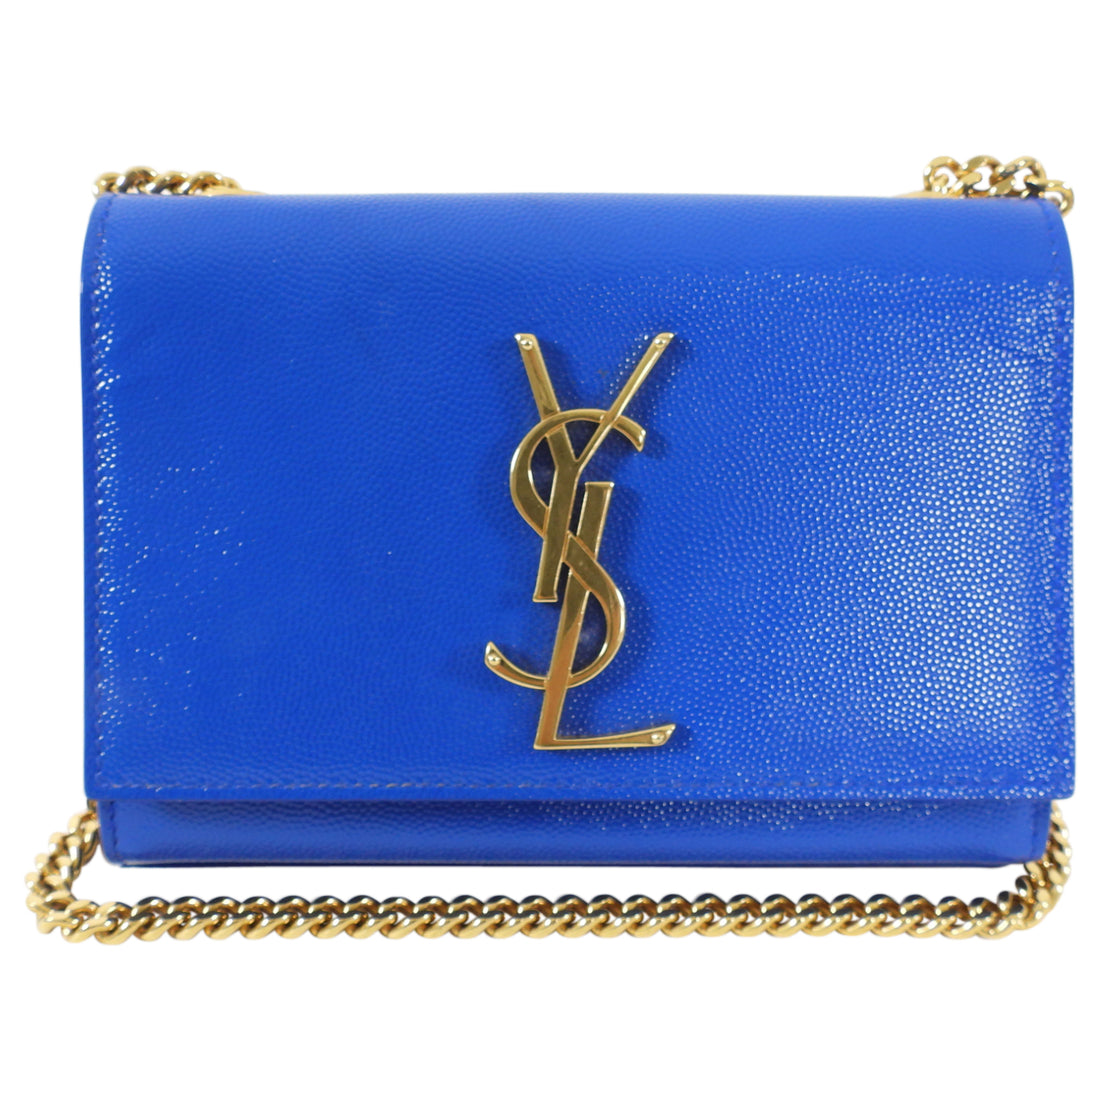 Saint Laurent Blue and Gold Mini Kate Crossbody Bag